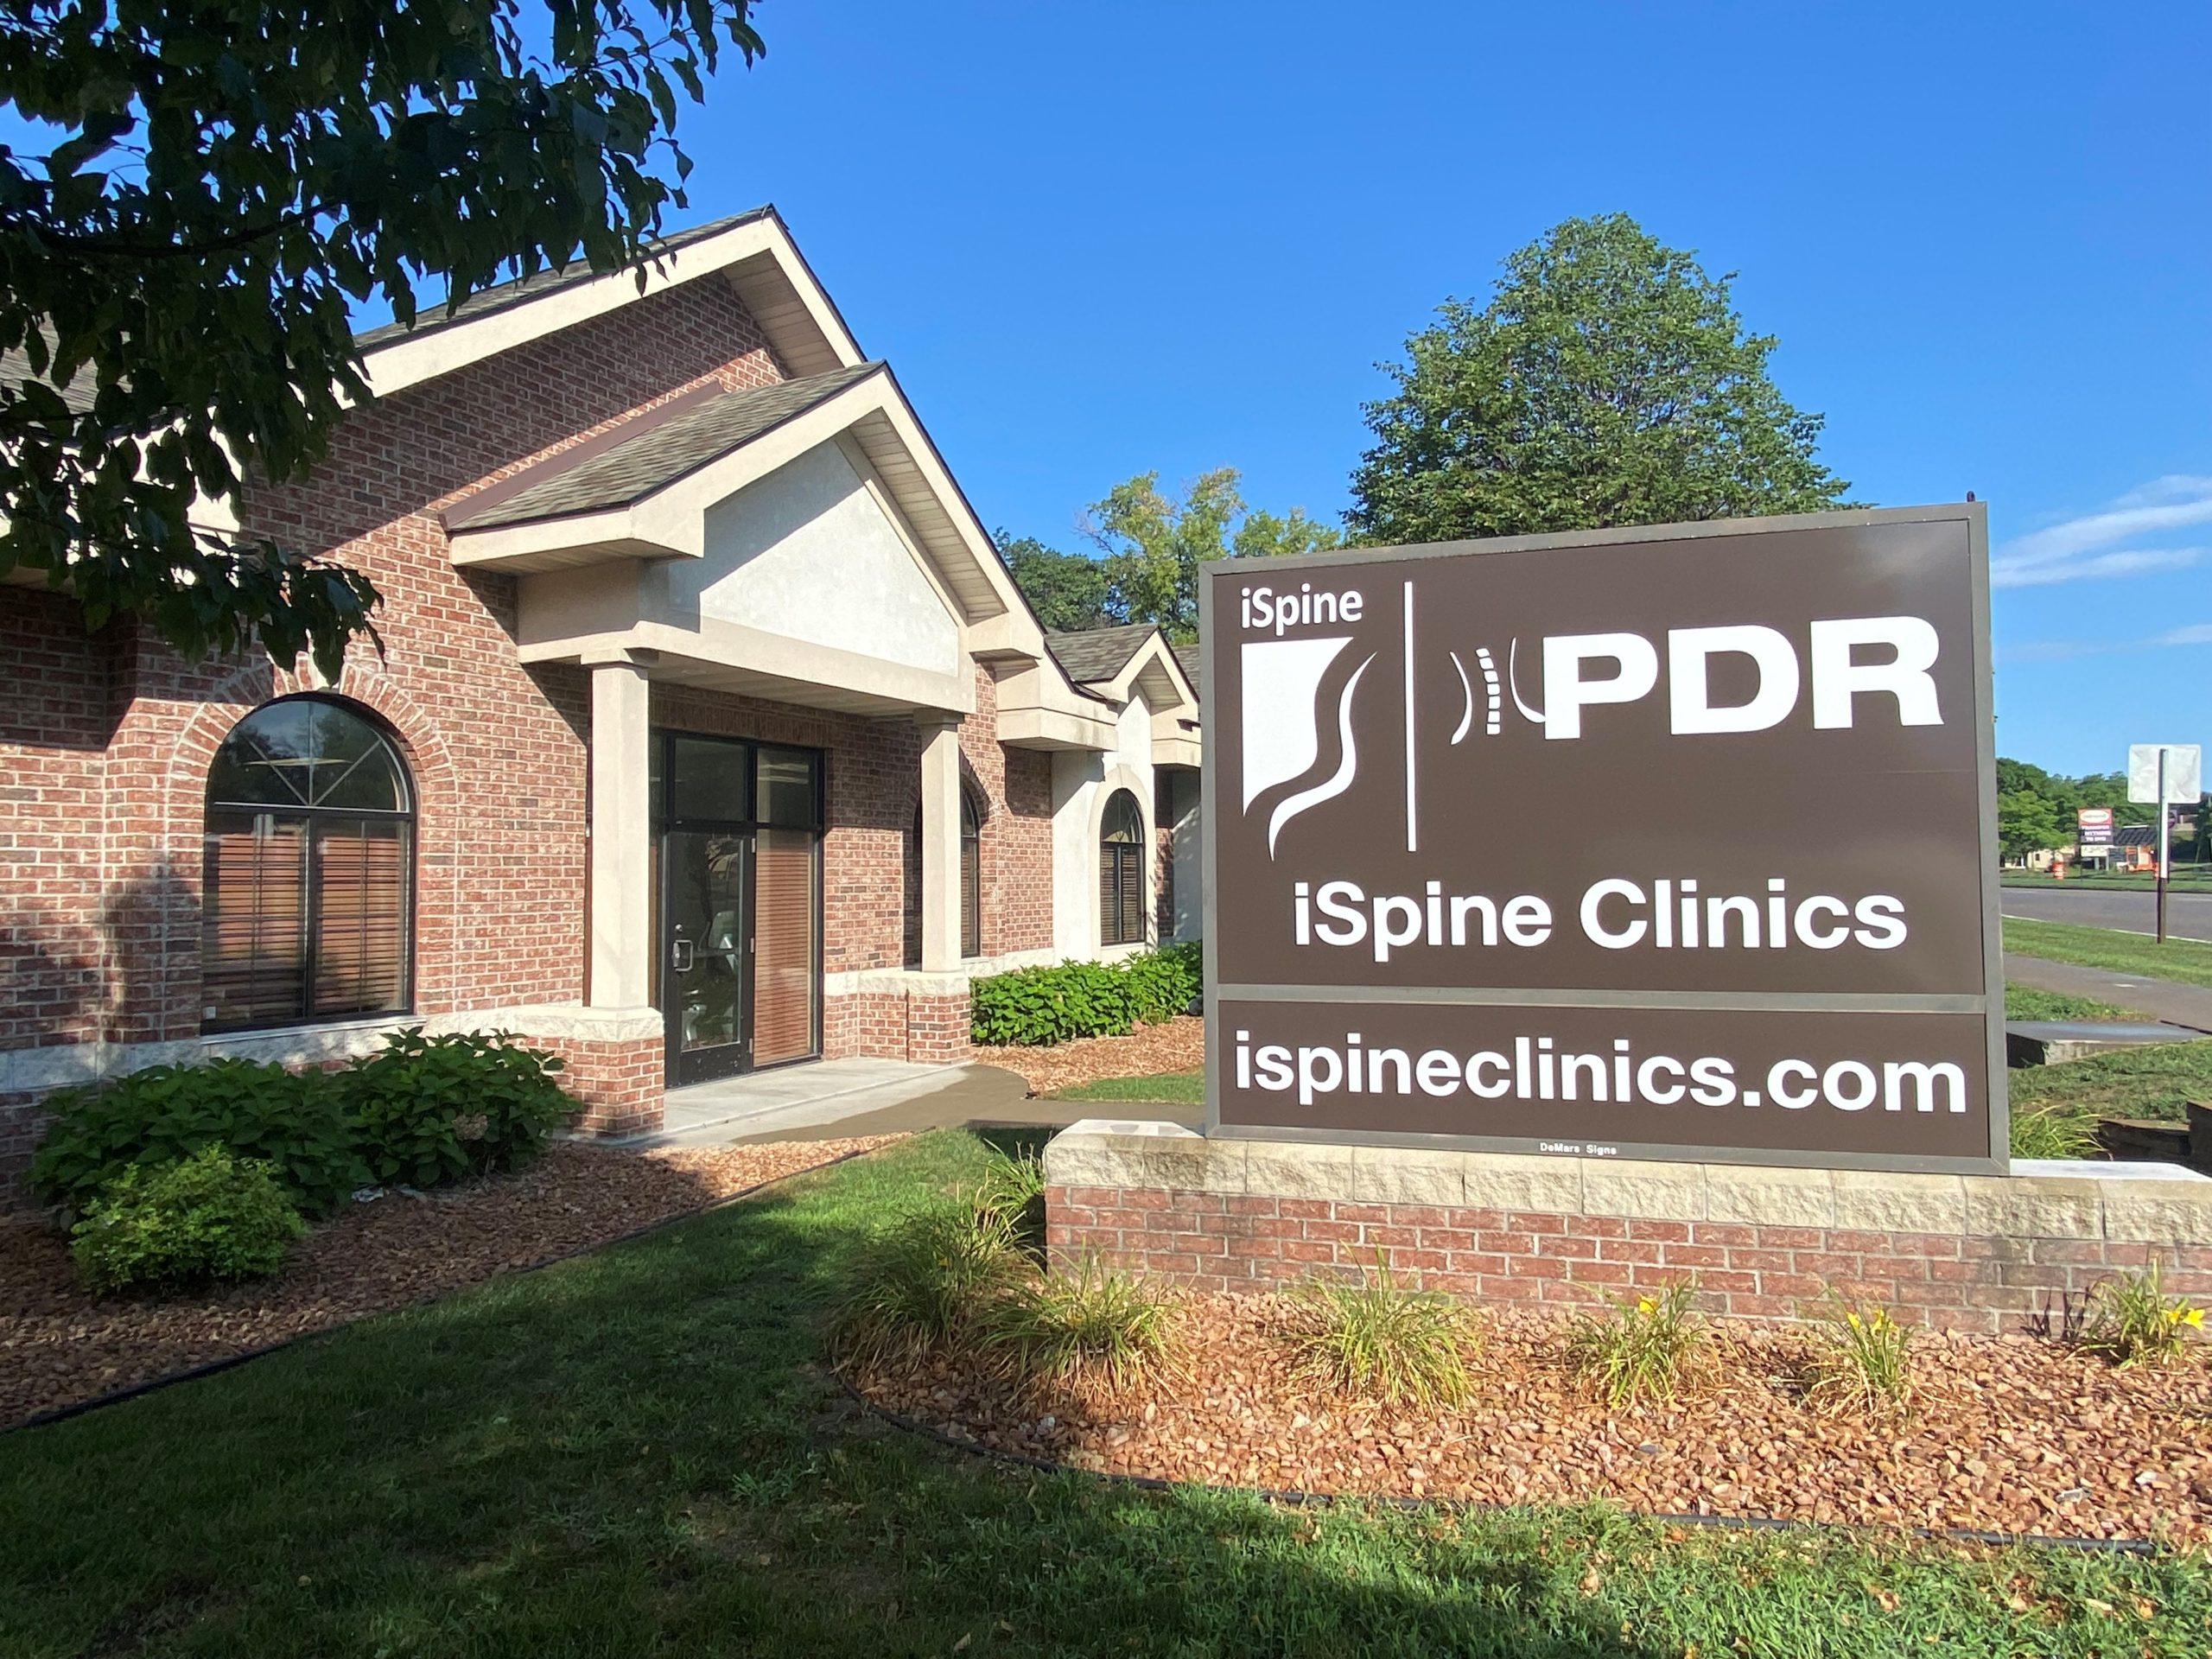 iSpine PDR Coon Rapids MN